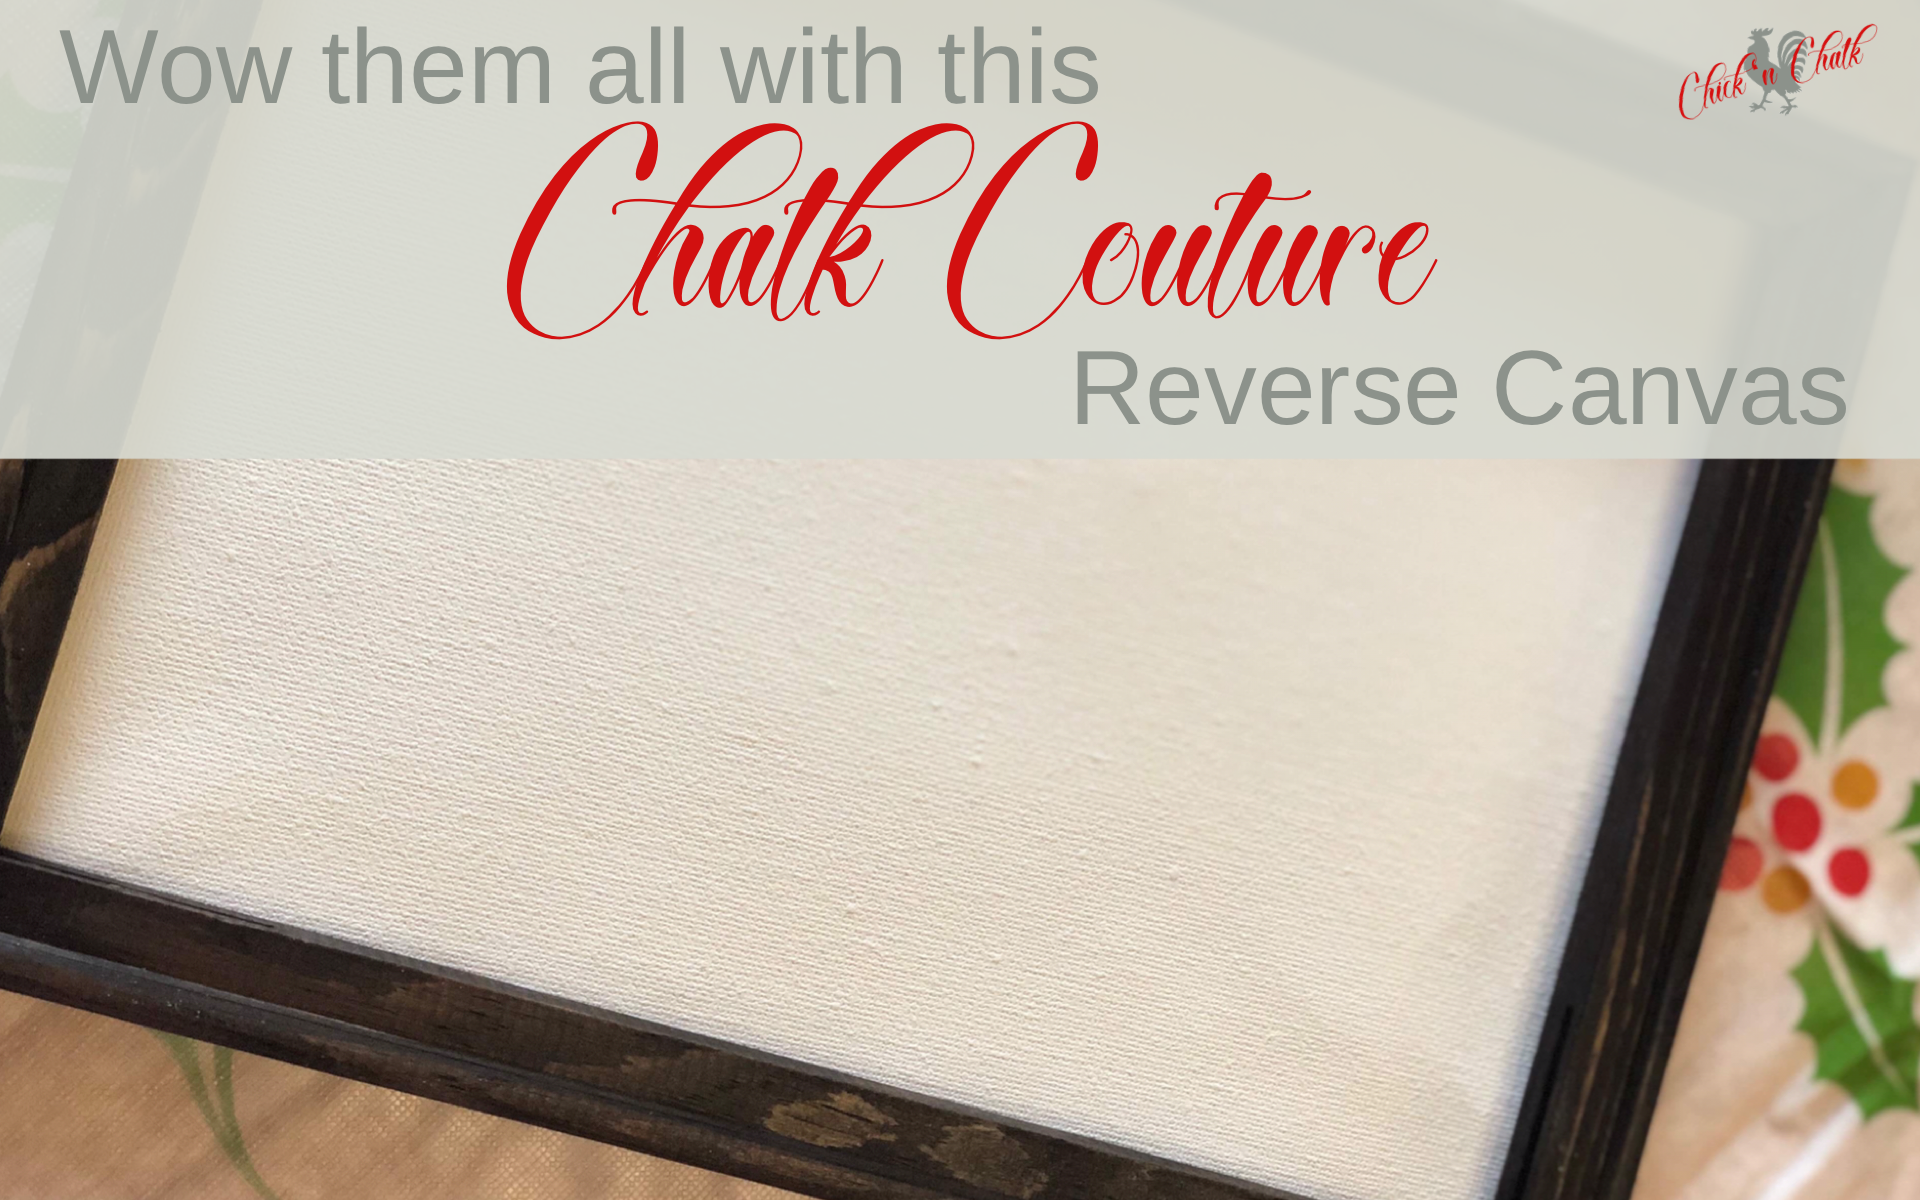 Wow! Them with This Chalk Couture Reverse Canvas! 1